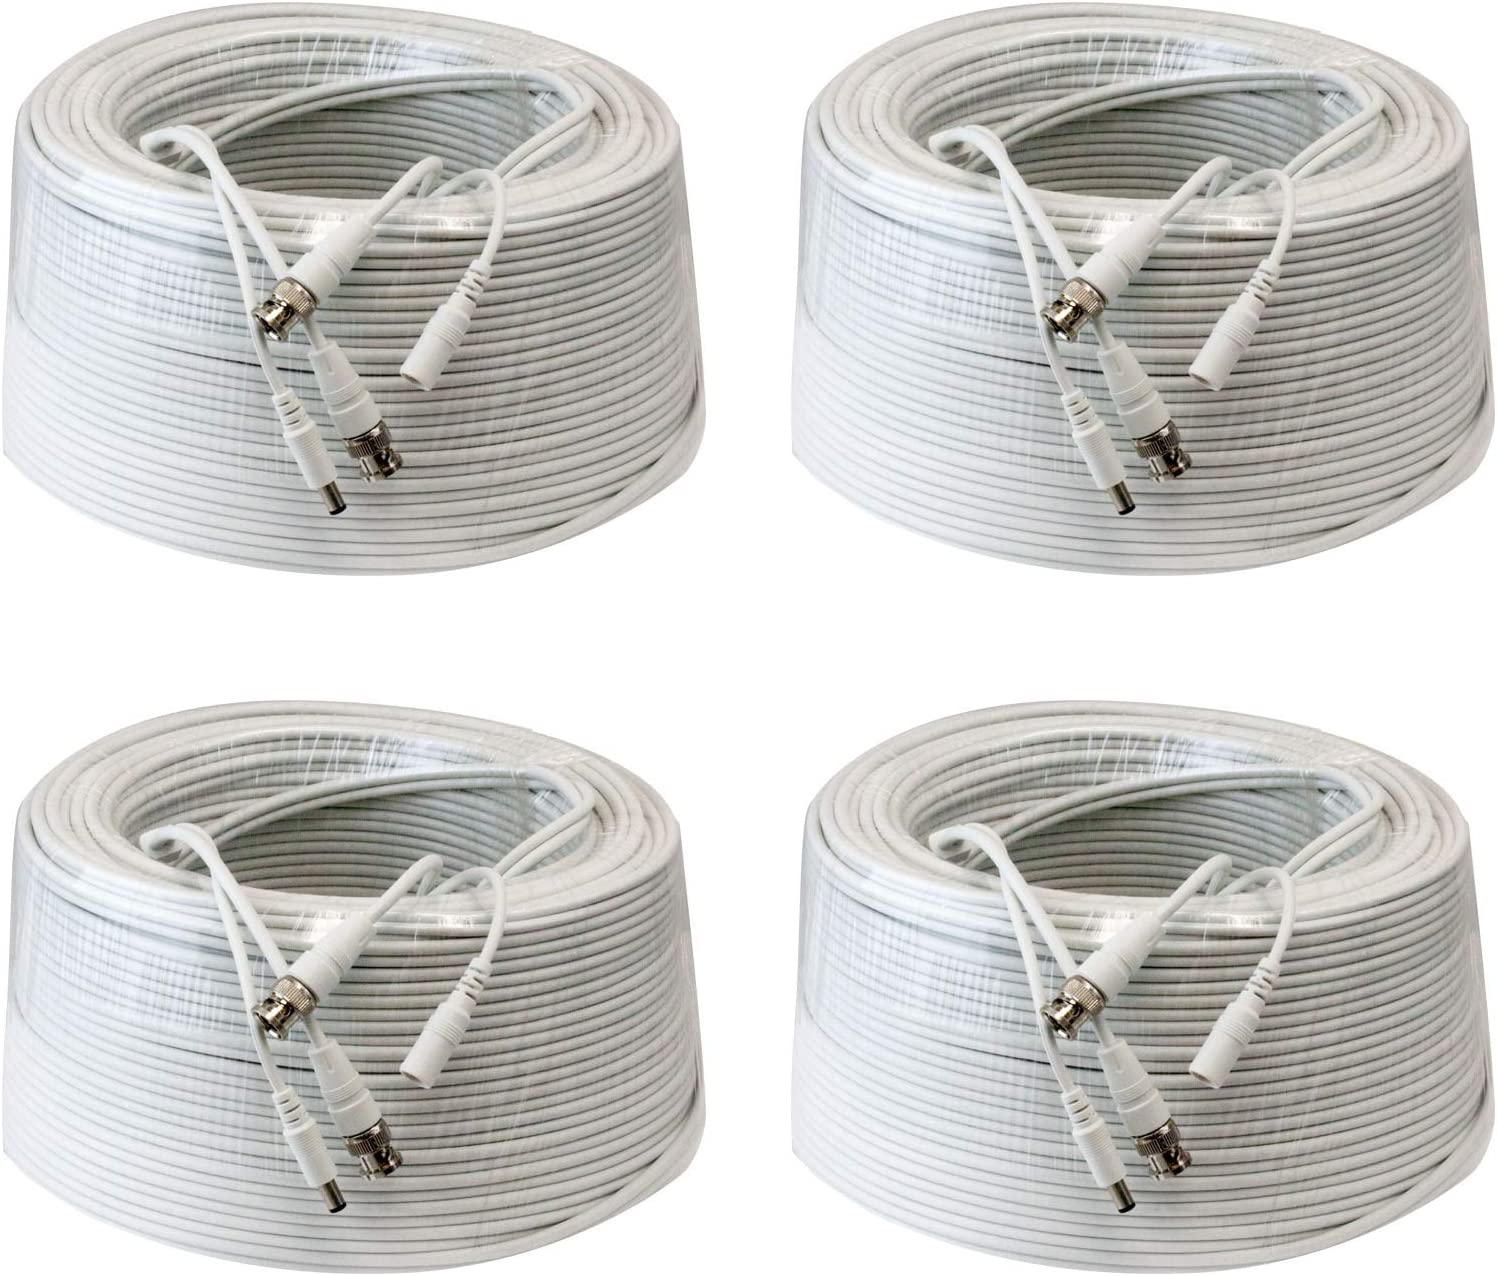 4 Pack 200Ft Rg59 Siamese Combo 20Awg Power Video Coaxial Cable Bnc 75Ohm 95% Braid Wire Cord For Hd-Sdi, Ahd, Tvi, Cvi All Cctv Security Cameras With Bnc Connector And 2.1Mm Power Jack (White)